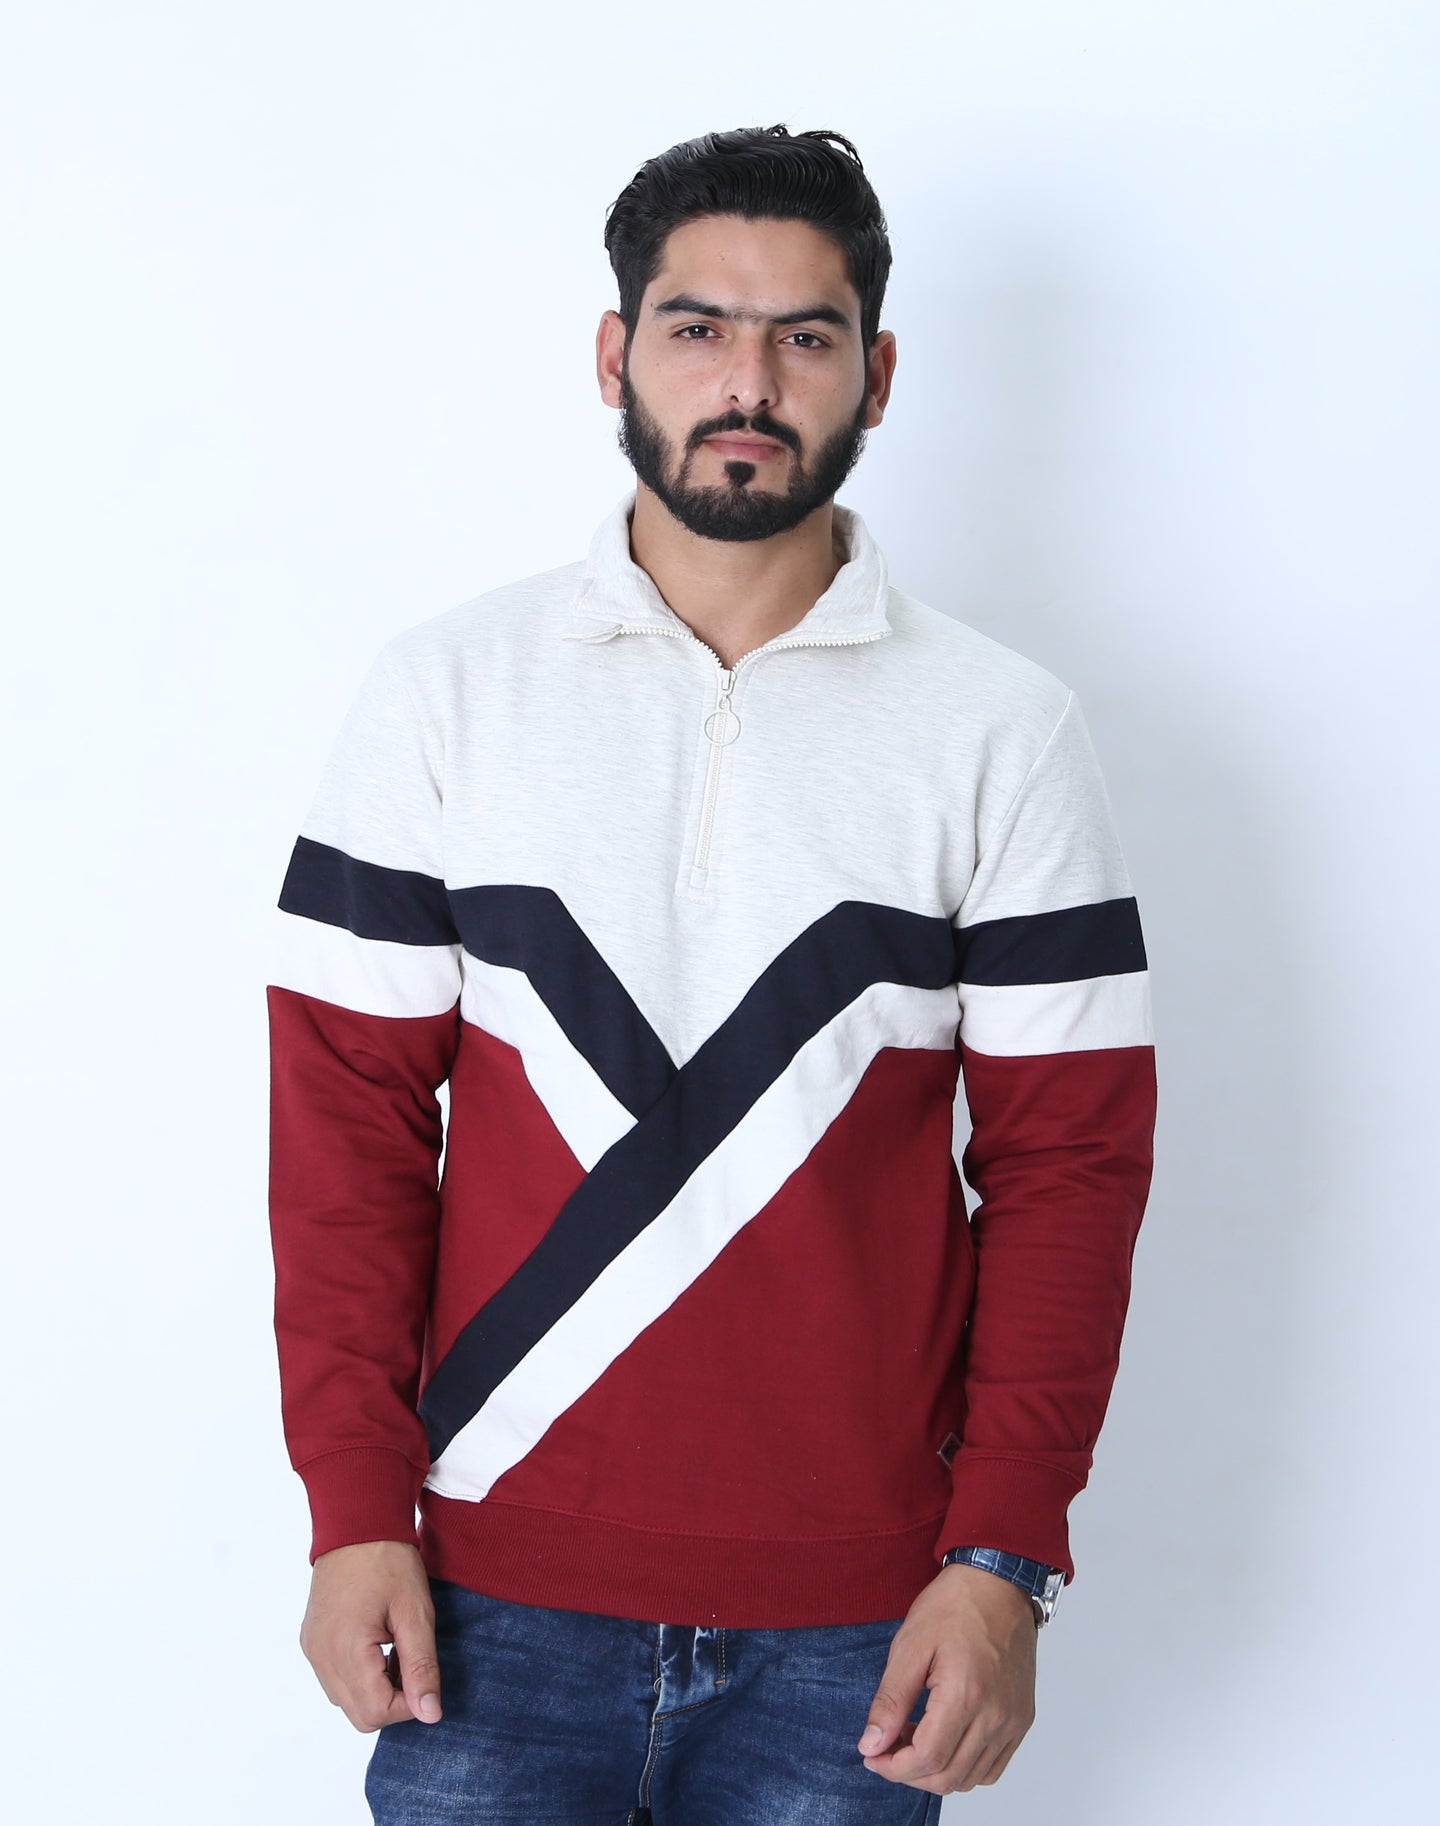 SOUL S - Premium Men's 1/4 Zip Up with Retro Stripes